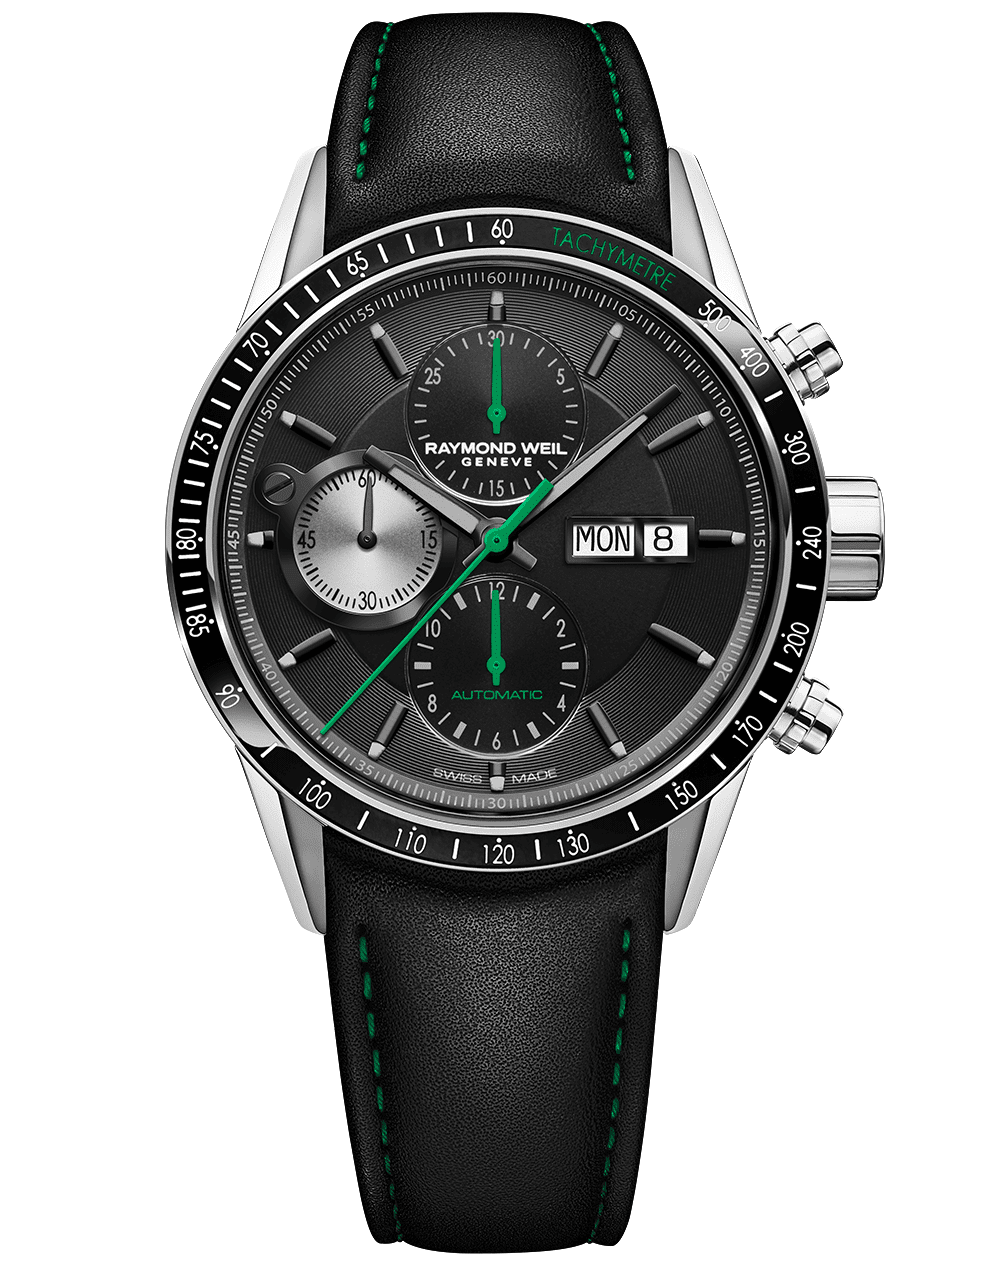 RAYMOND WEIL Freelancer Chronograph Black Leather Watch